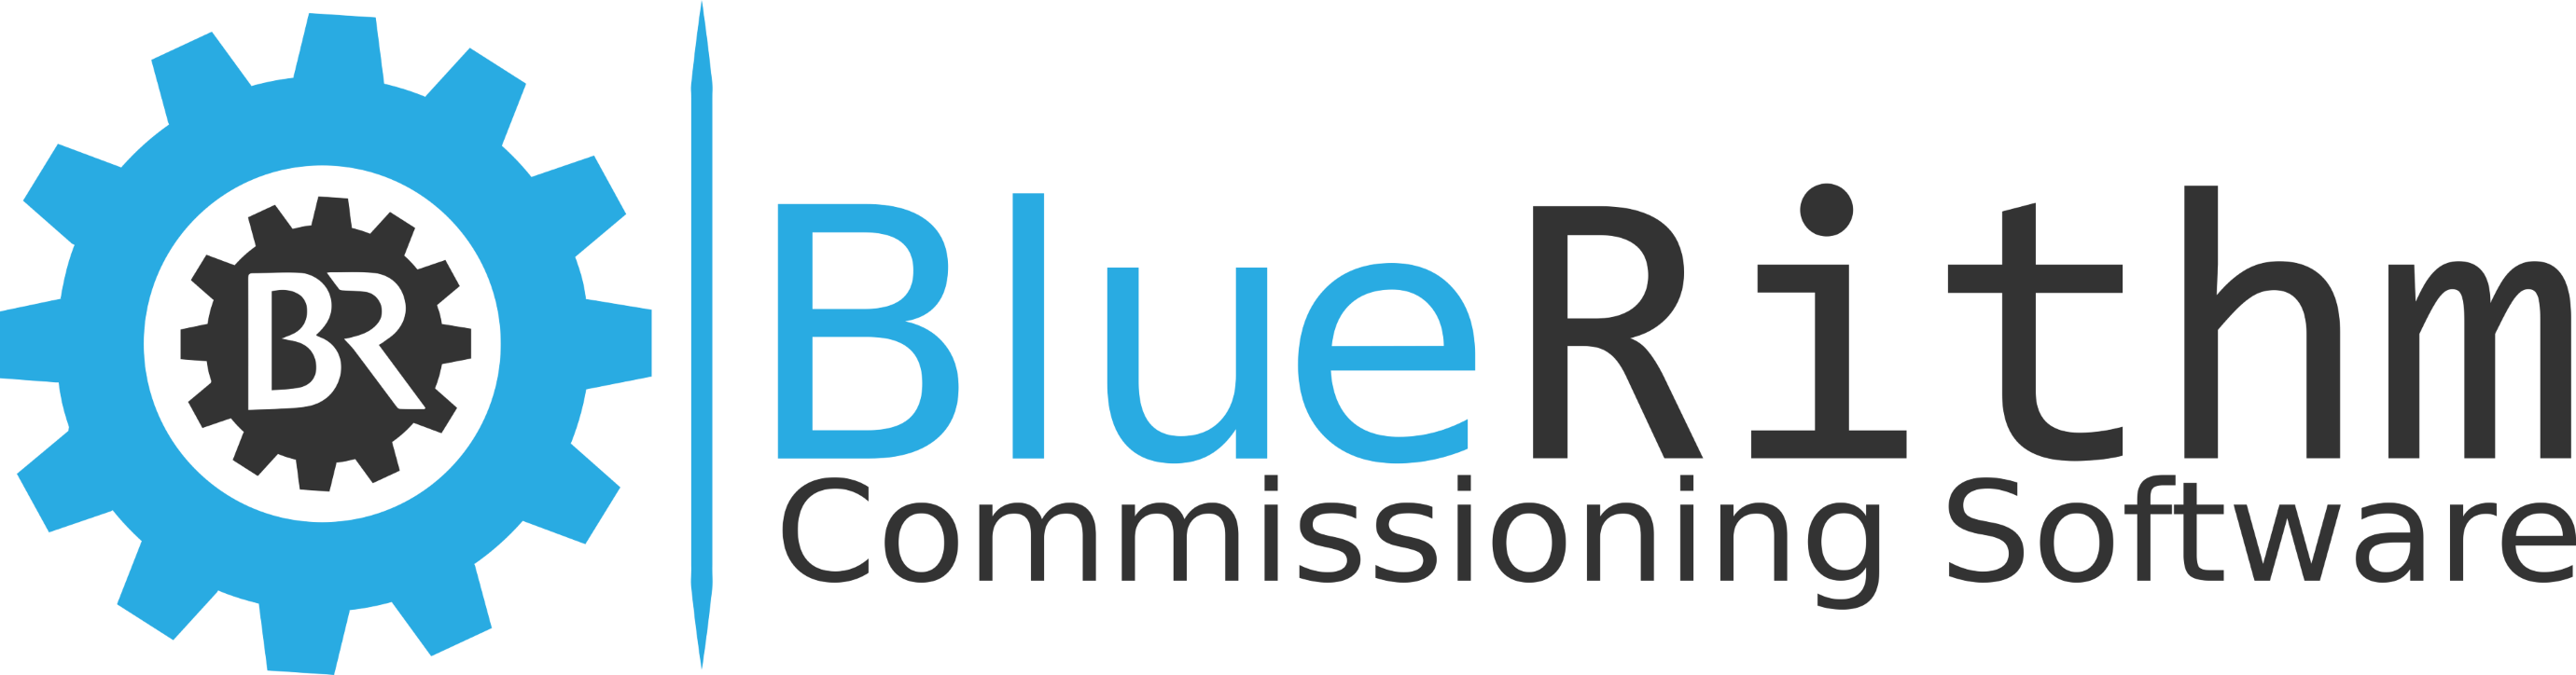 BlueRithm Commissioning Software